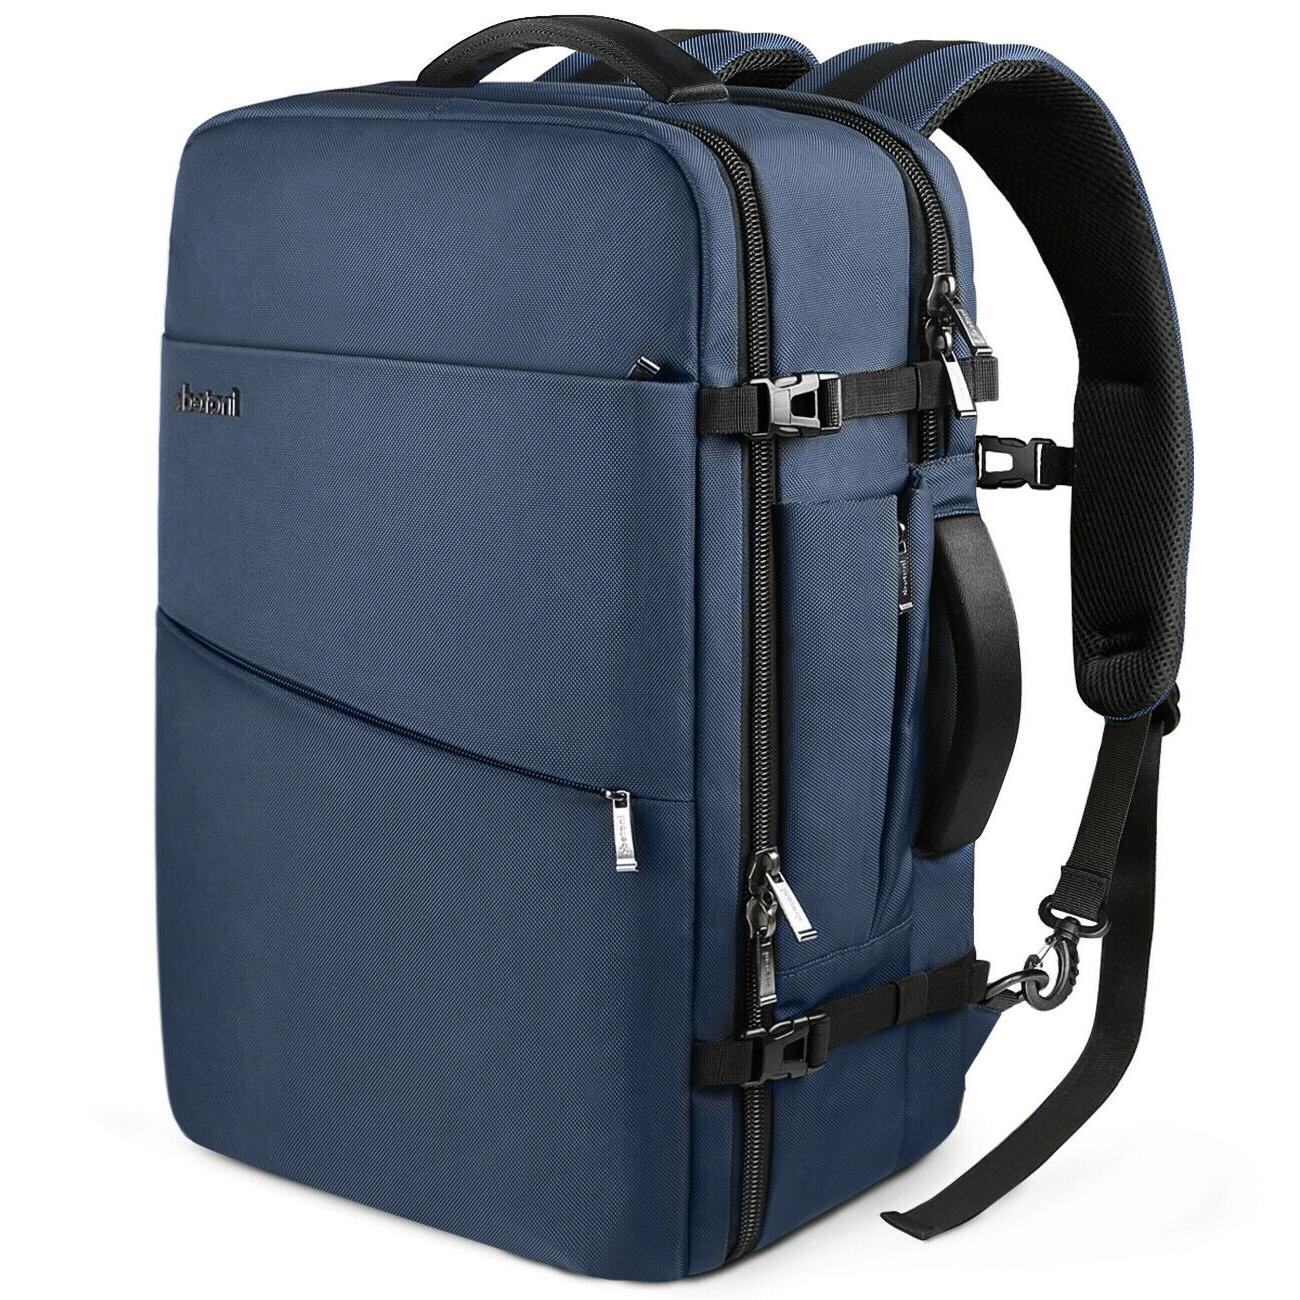 40l carry on travel backpack for 17